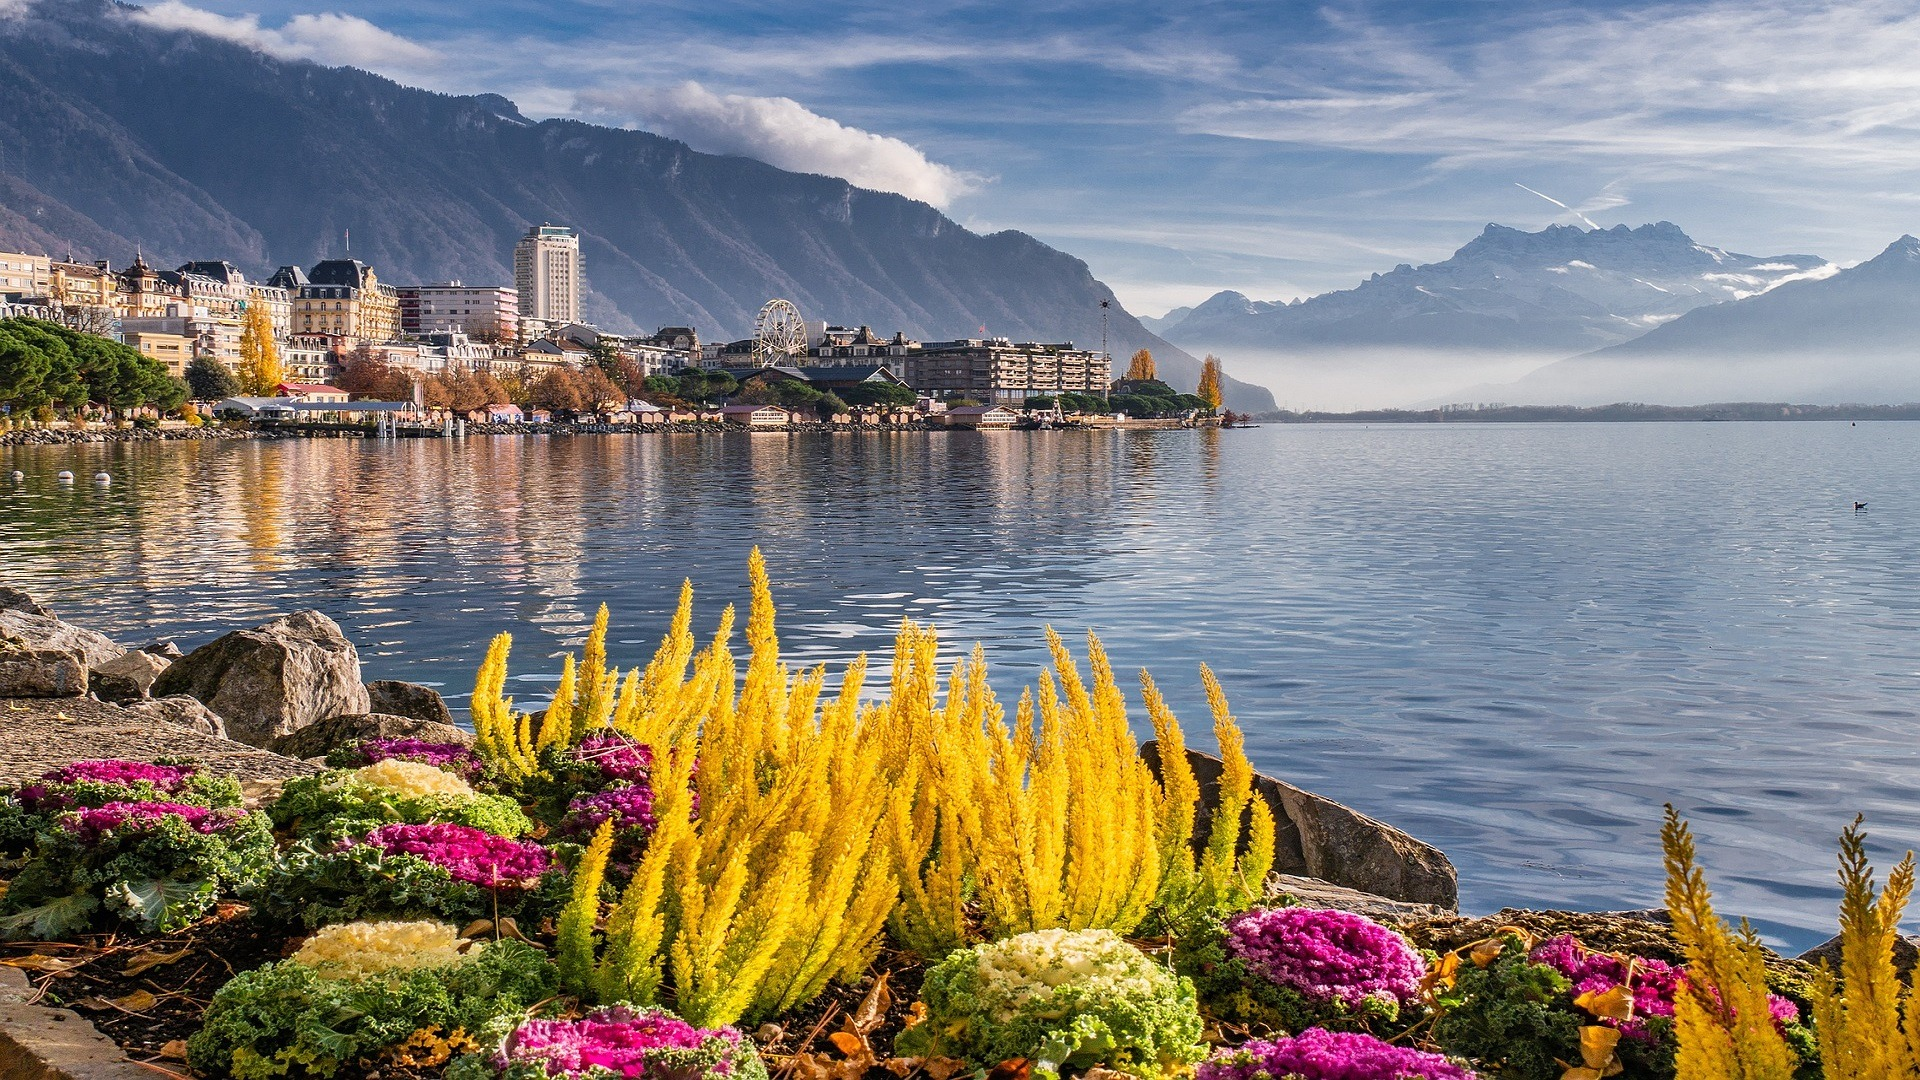 plants on rock, sea water, mountain, city